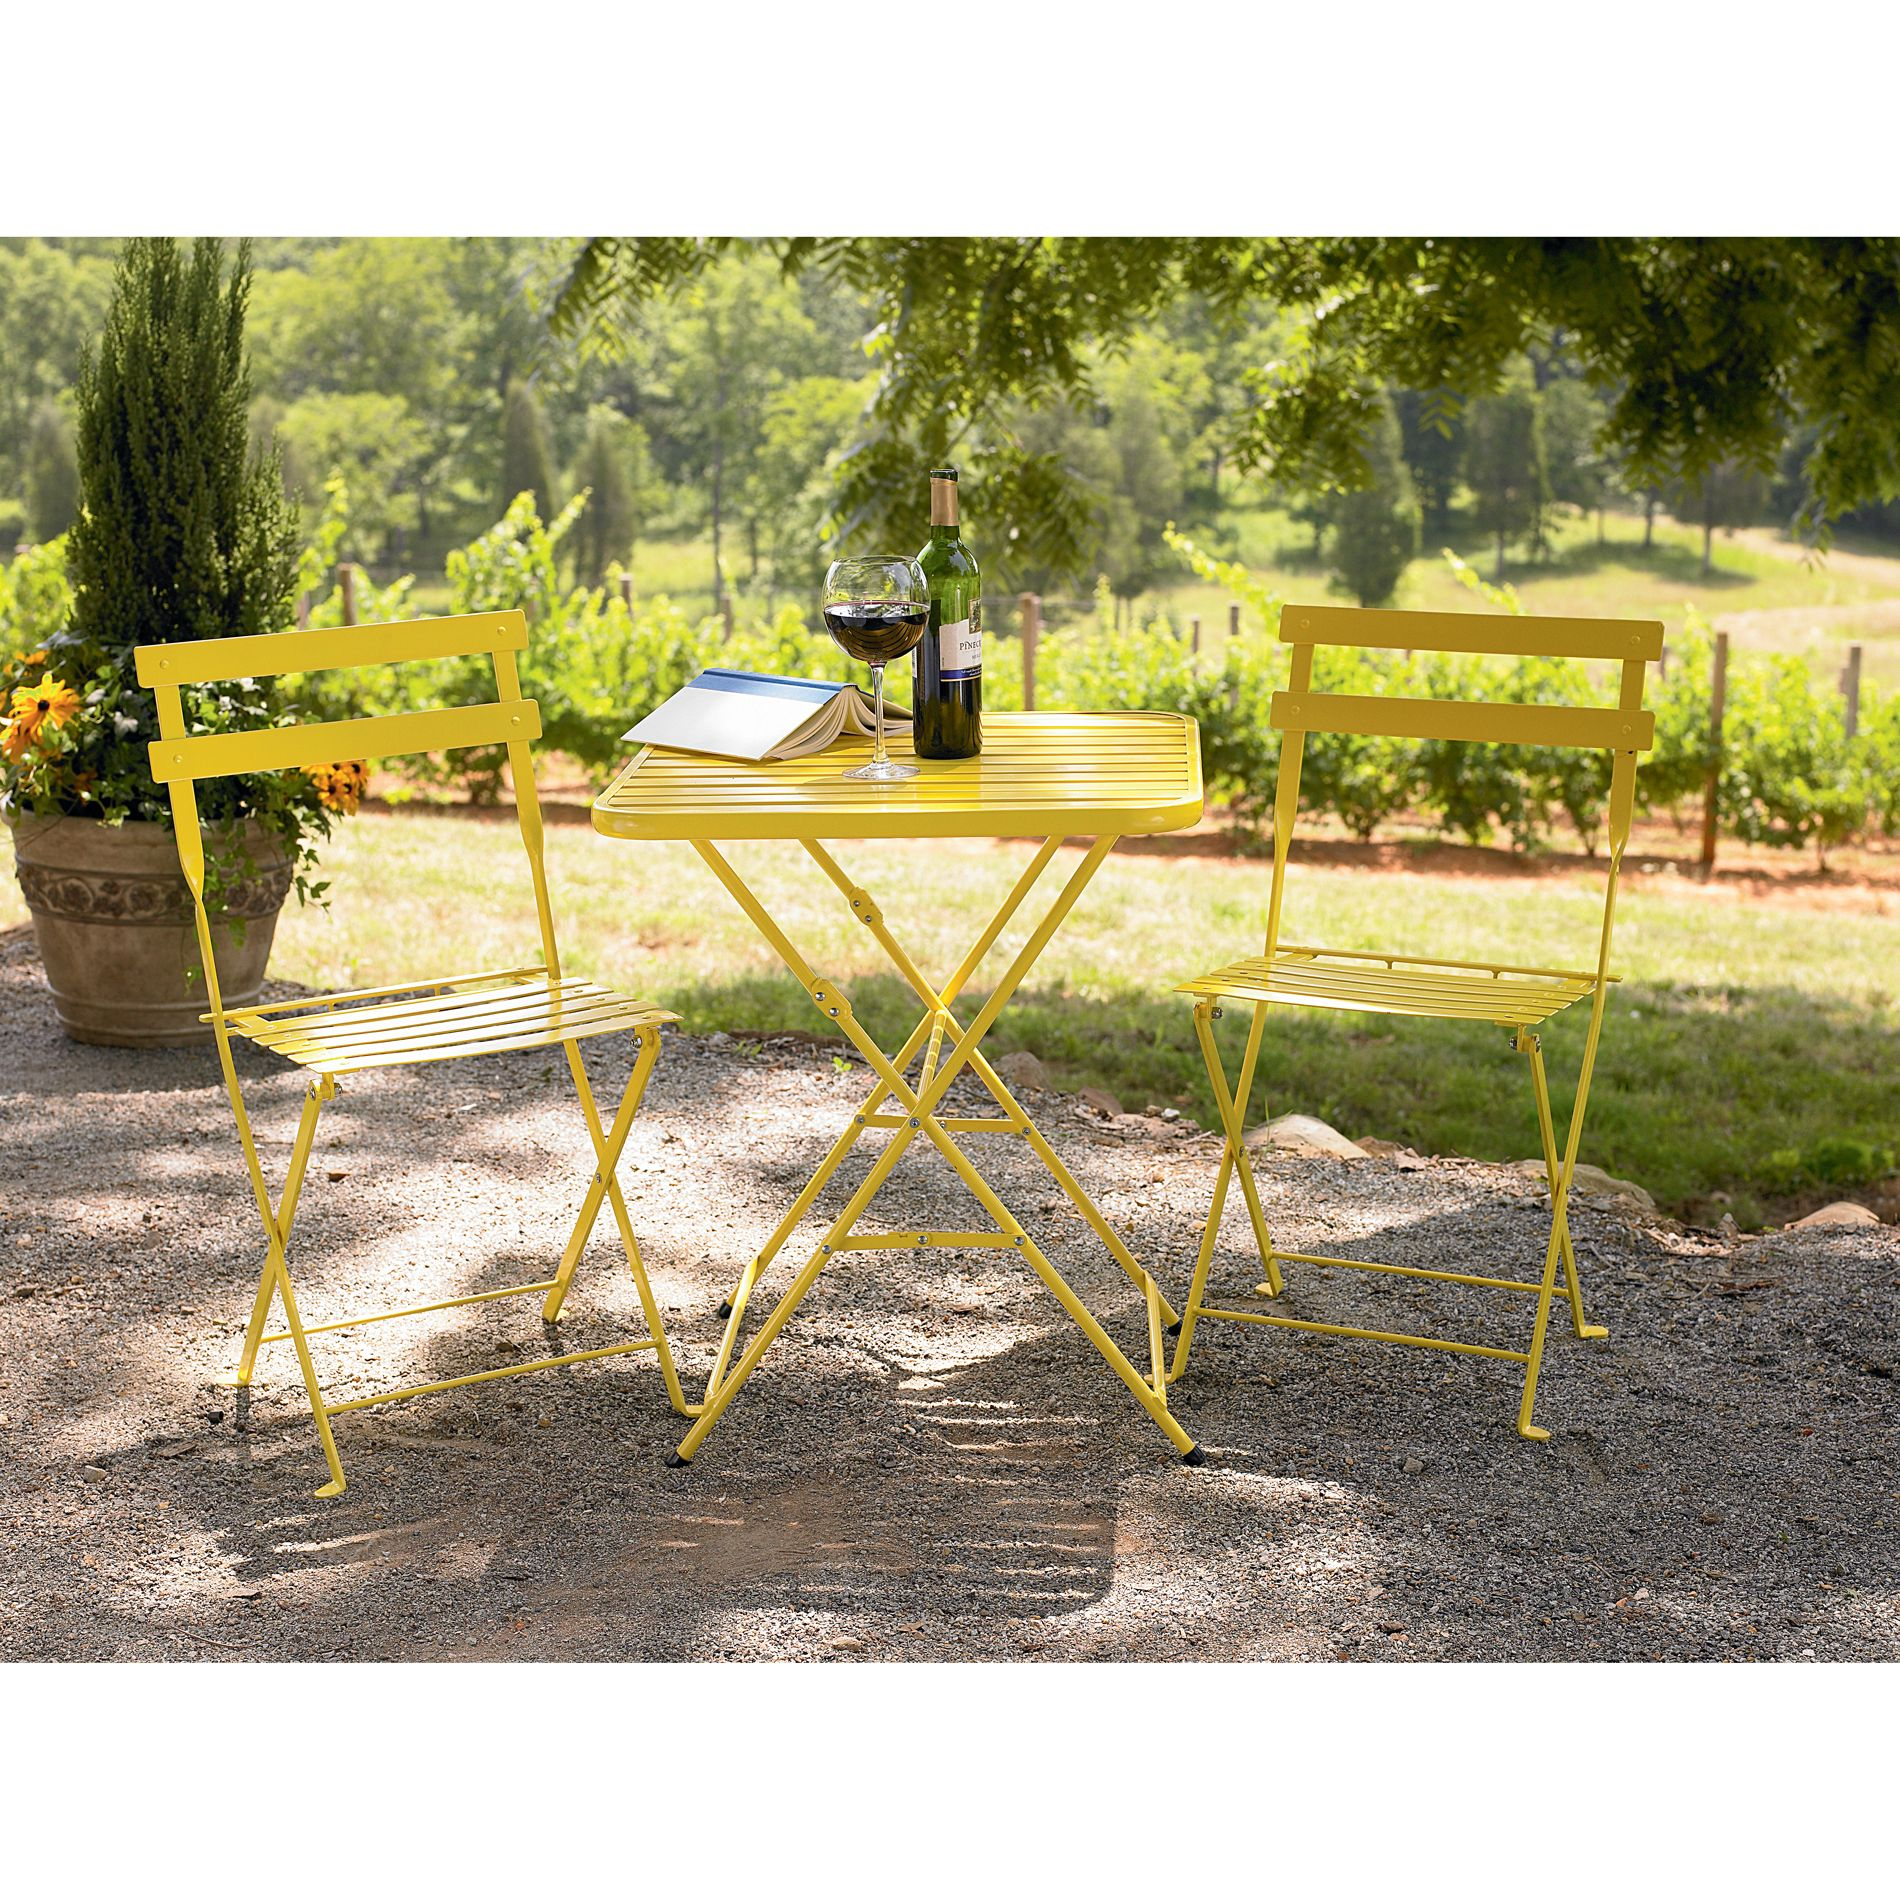 French Bistro Style Steel Chair - Yellow                                                                                         at mygofer.com